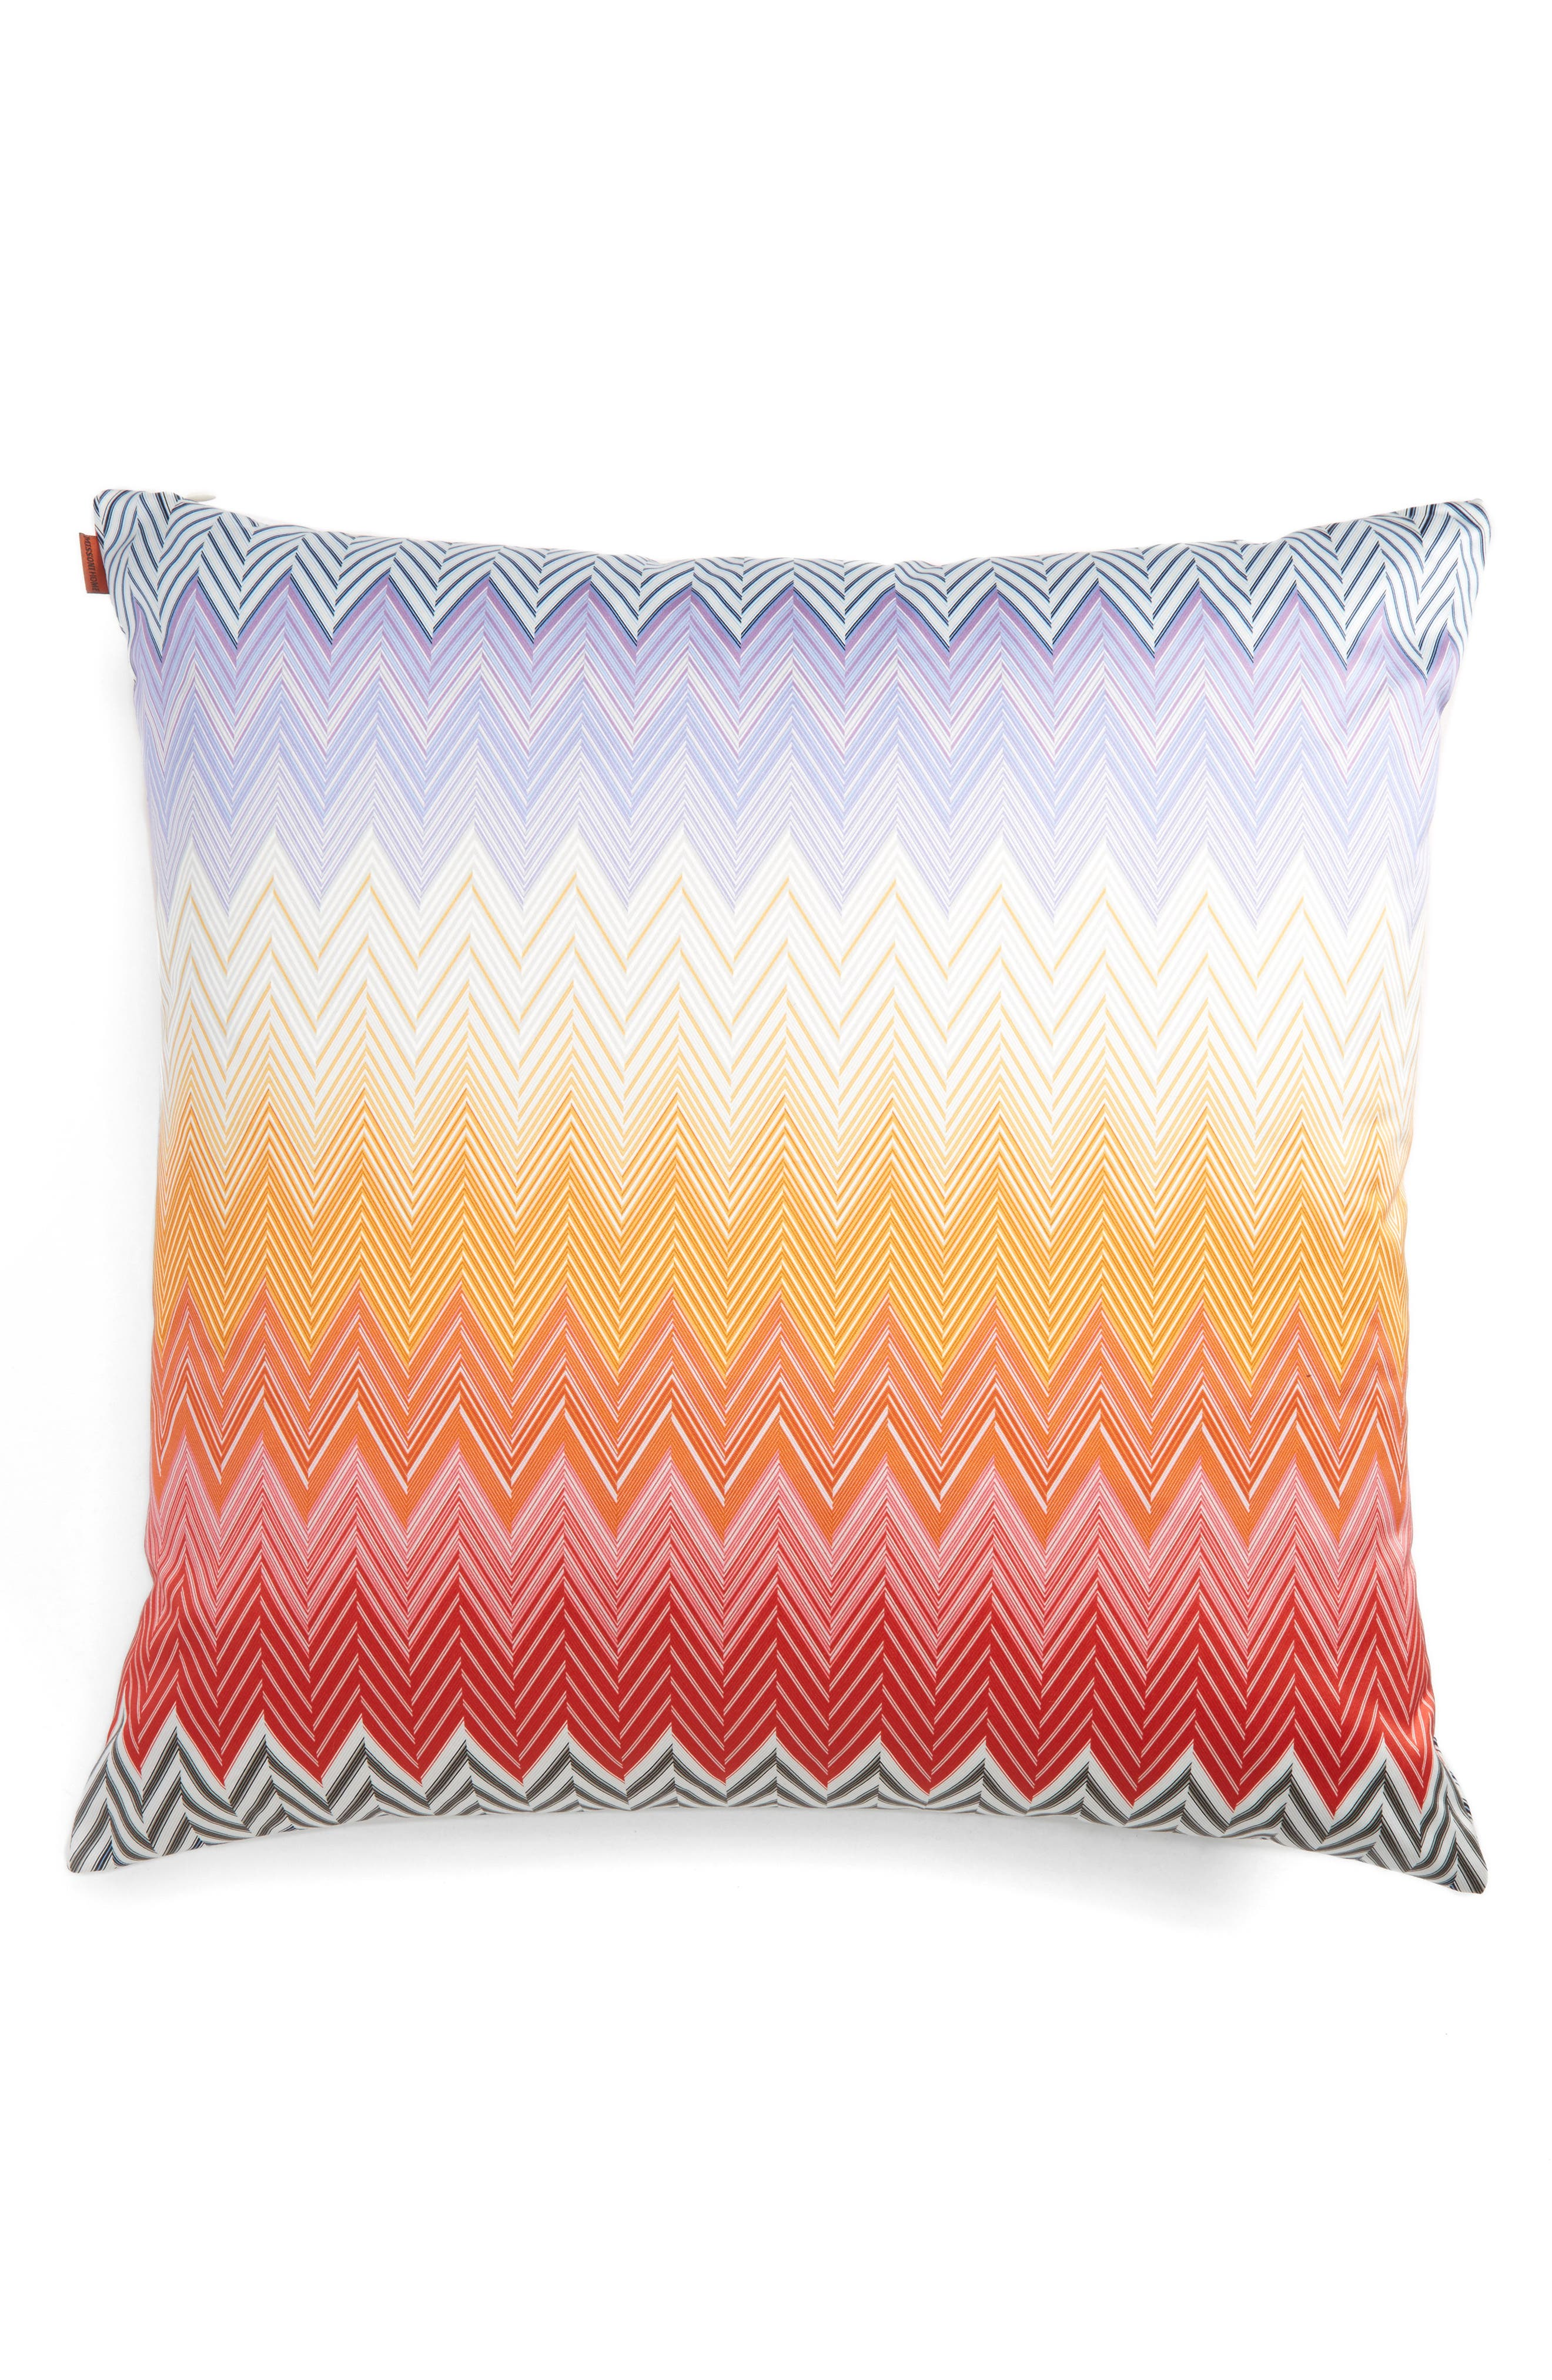 Sabaudia Accent Pillow,                         Main,                         color, 600